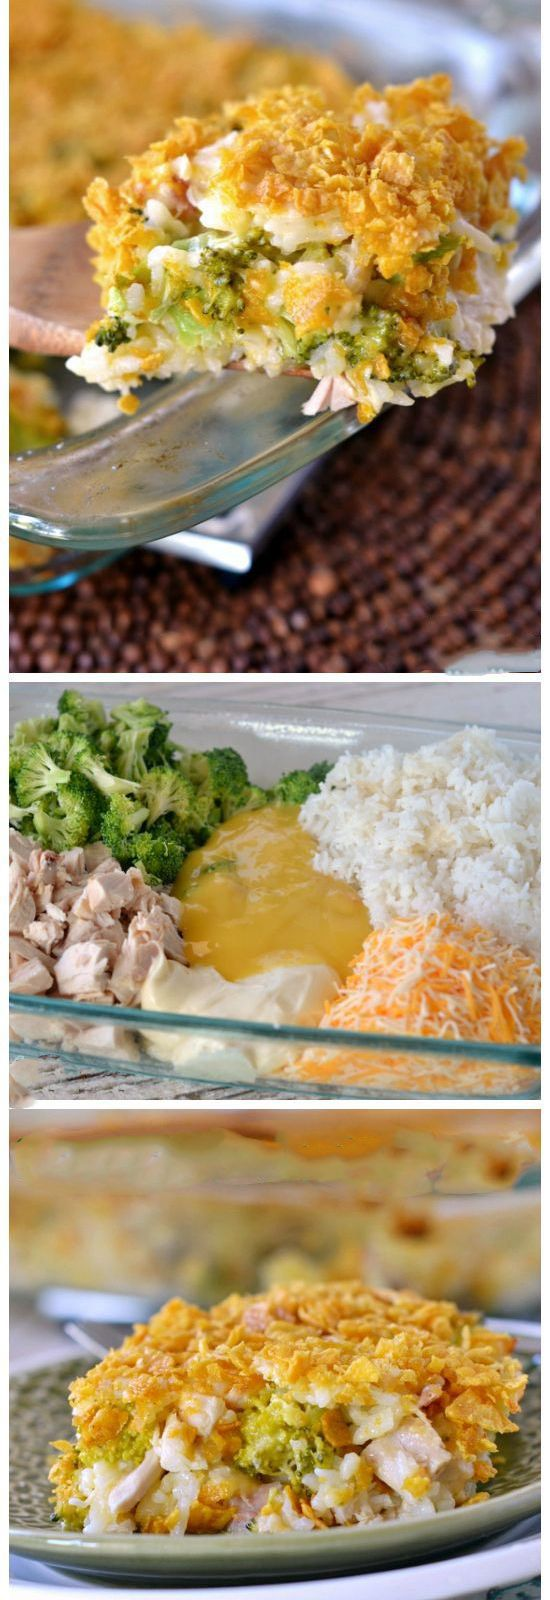 Cheesy Chicken Broccoli and Rice Casserole